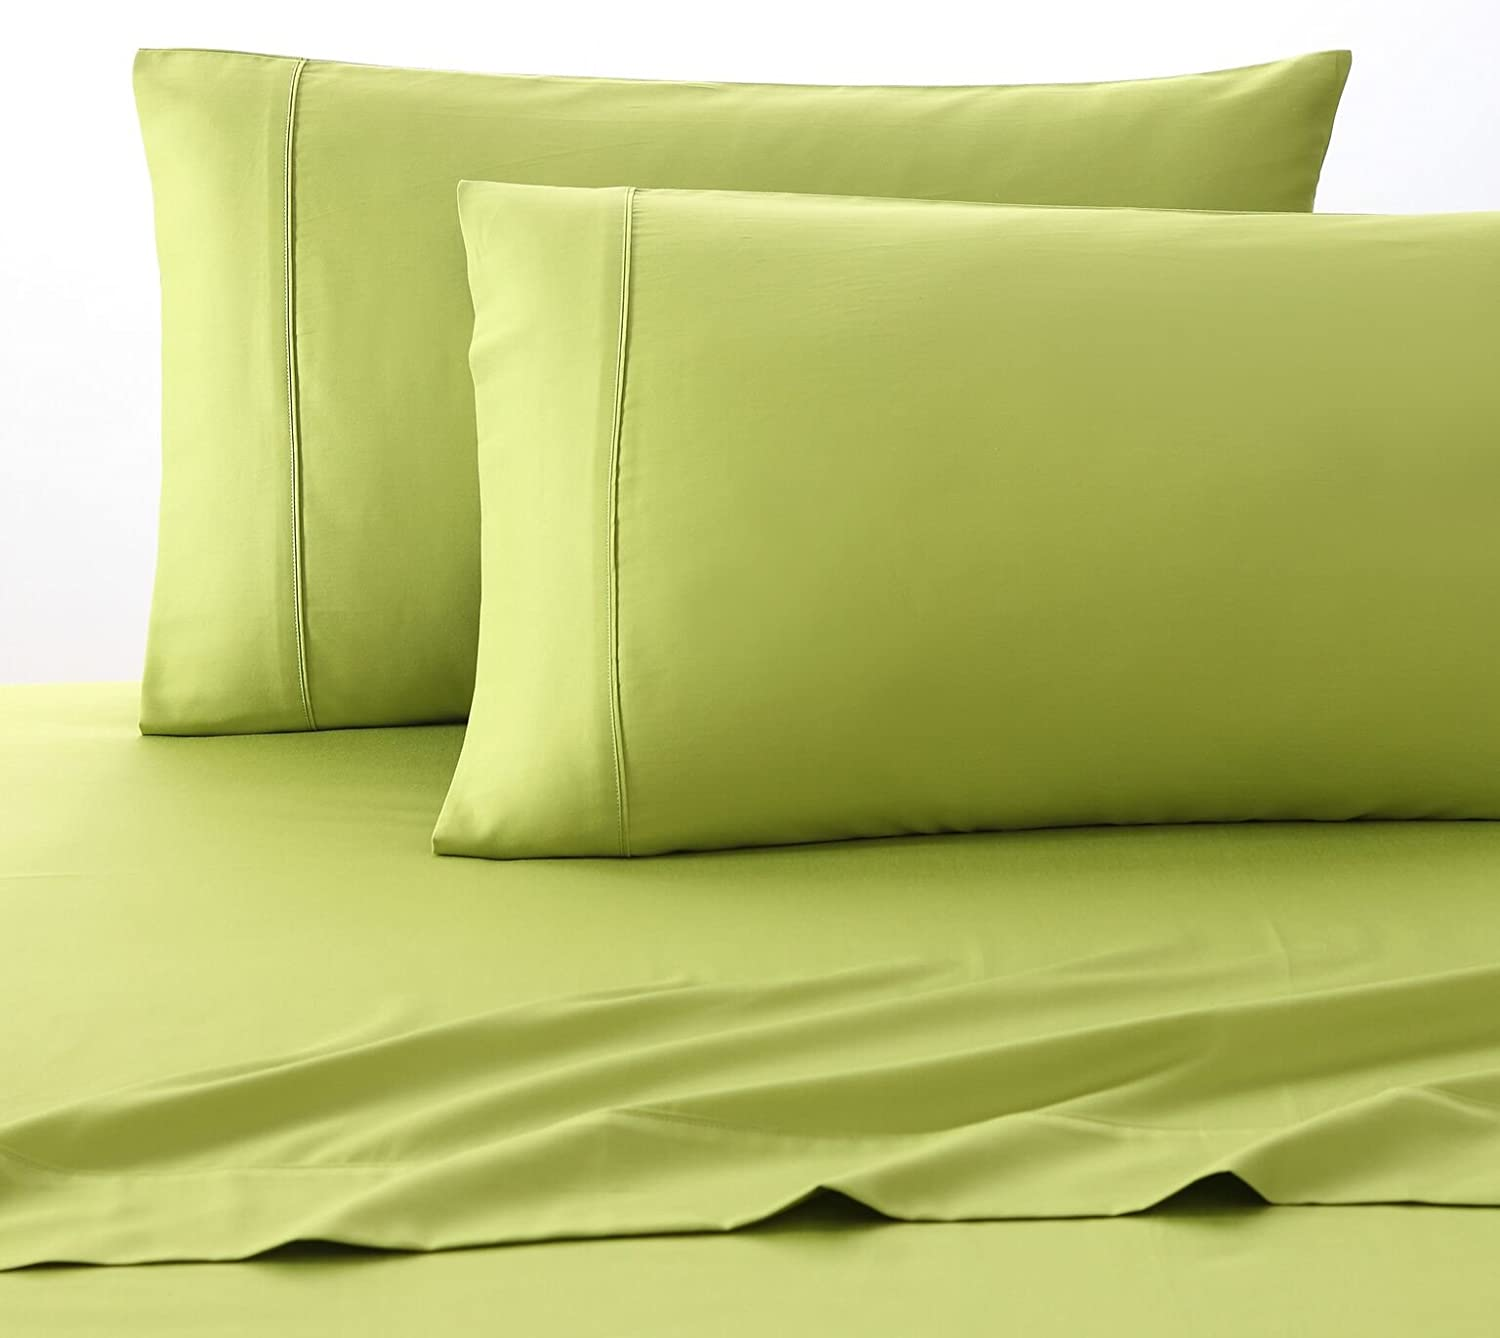 Fiesta Solid color Sheet Set, Lemongrass Green, Full